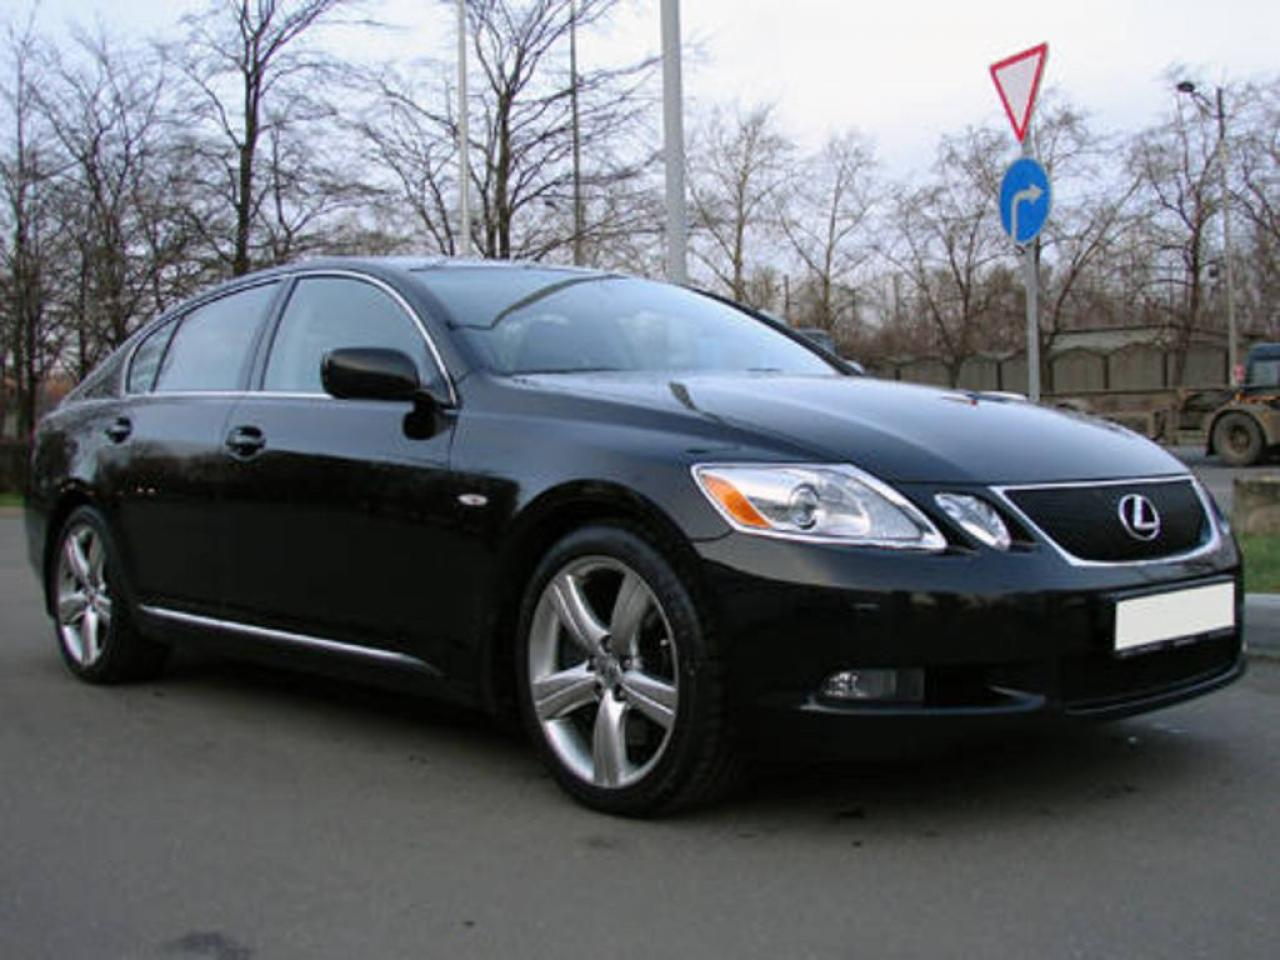 2003 lexus gs 430 information and photos zombiedrive. Black Bedroom Furniture Sets. Home Design Ideas